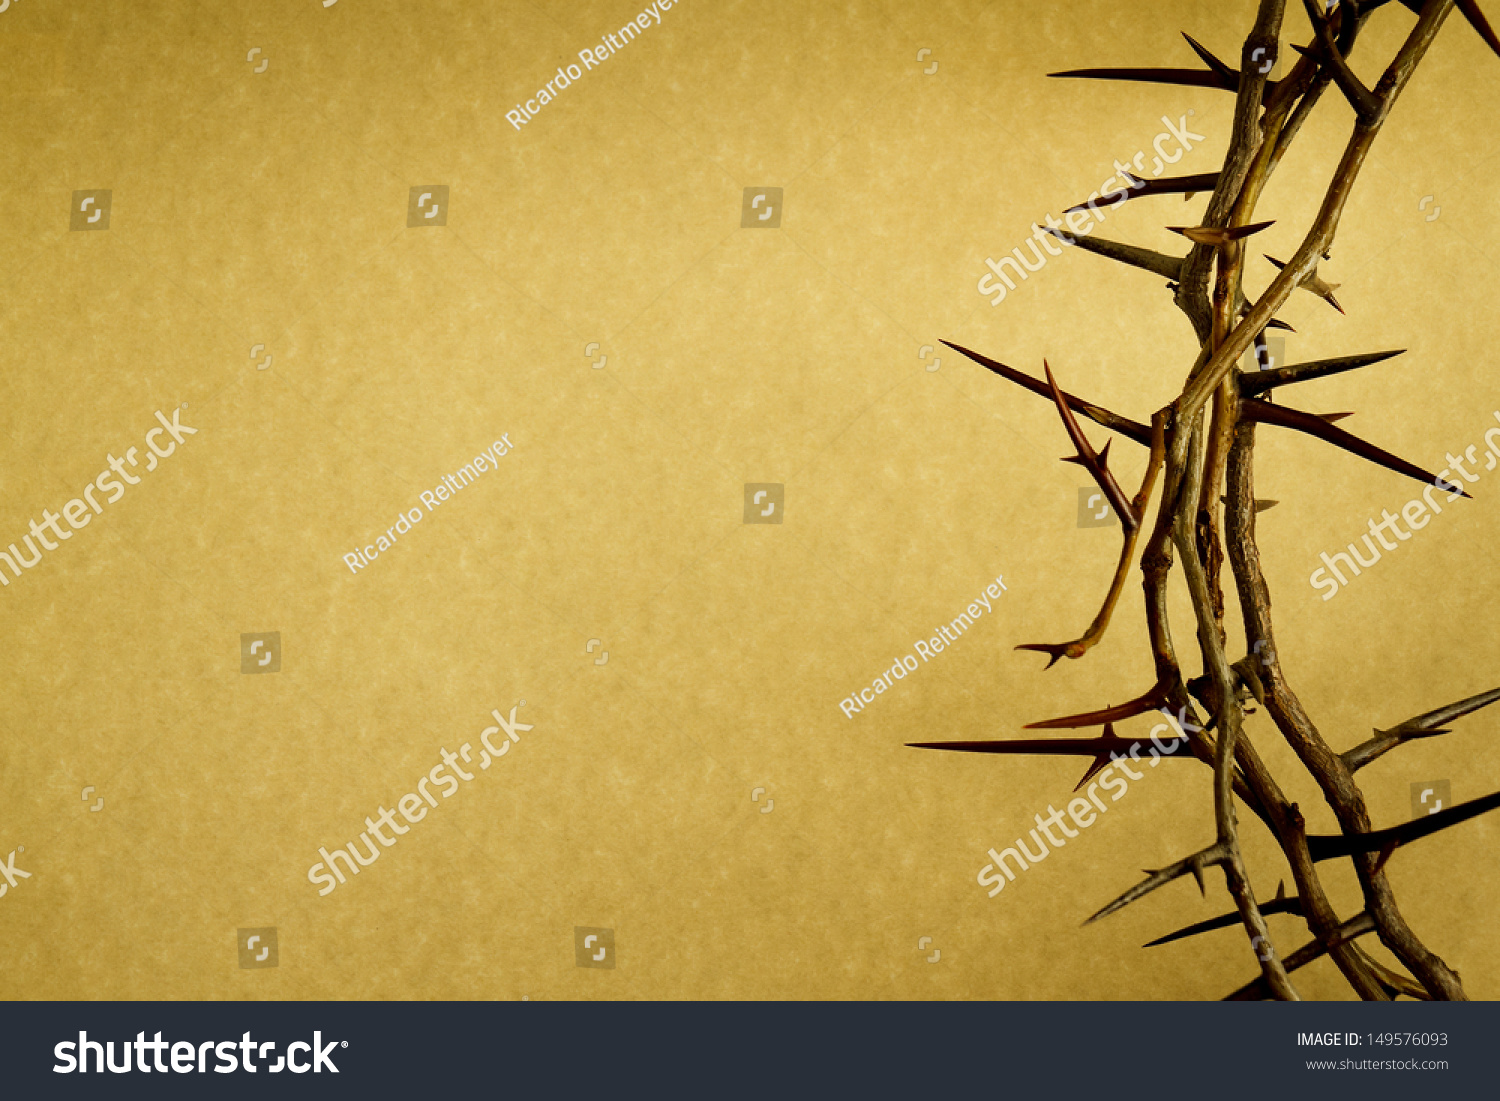 This Crown of Thorns against parchment paper represents Jesus's ...